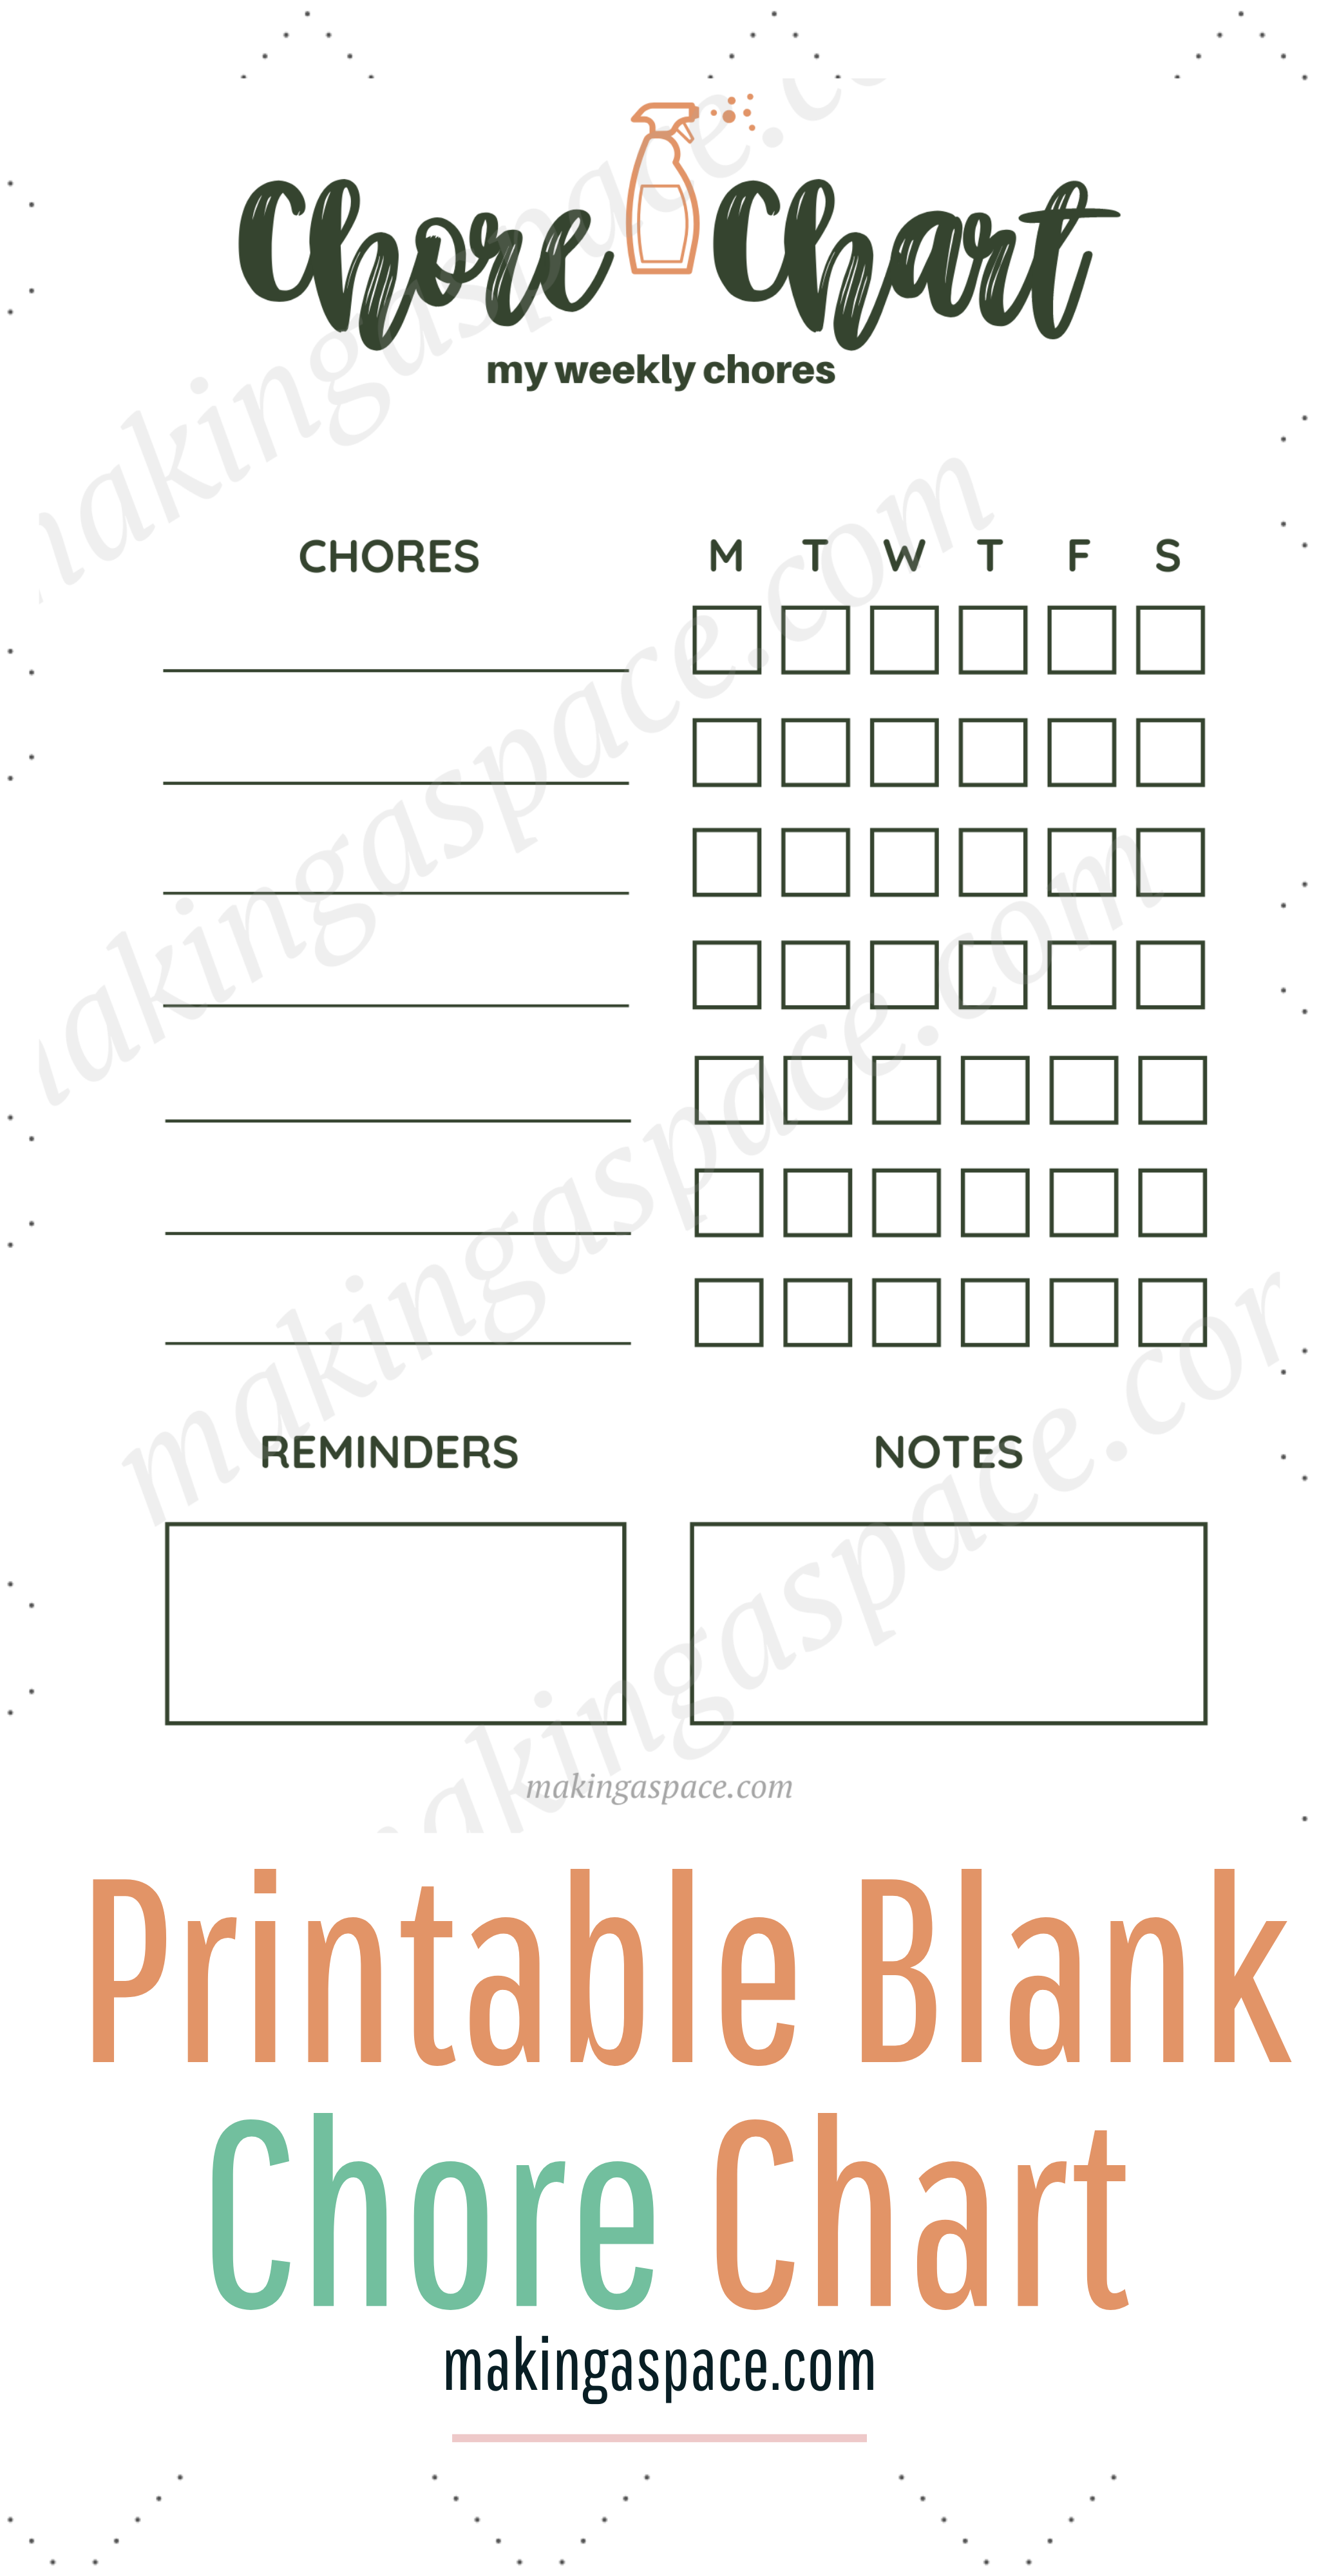 Printable Blank Chore Chart for the House